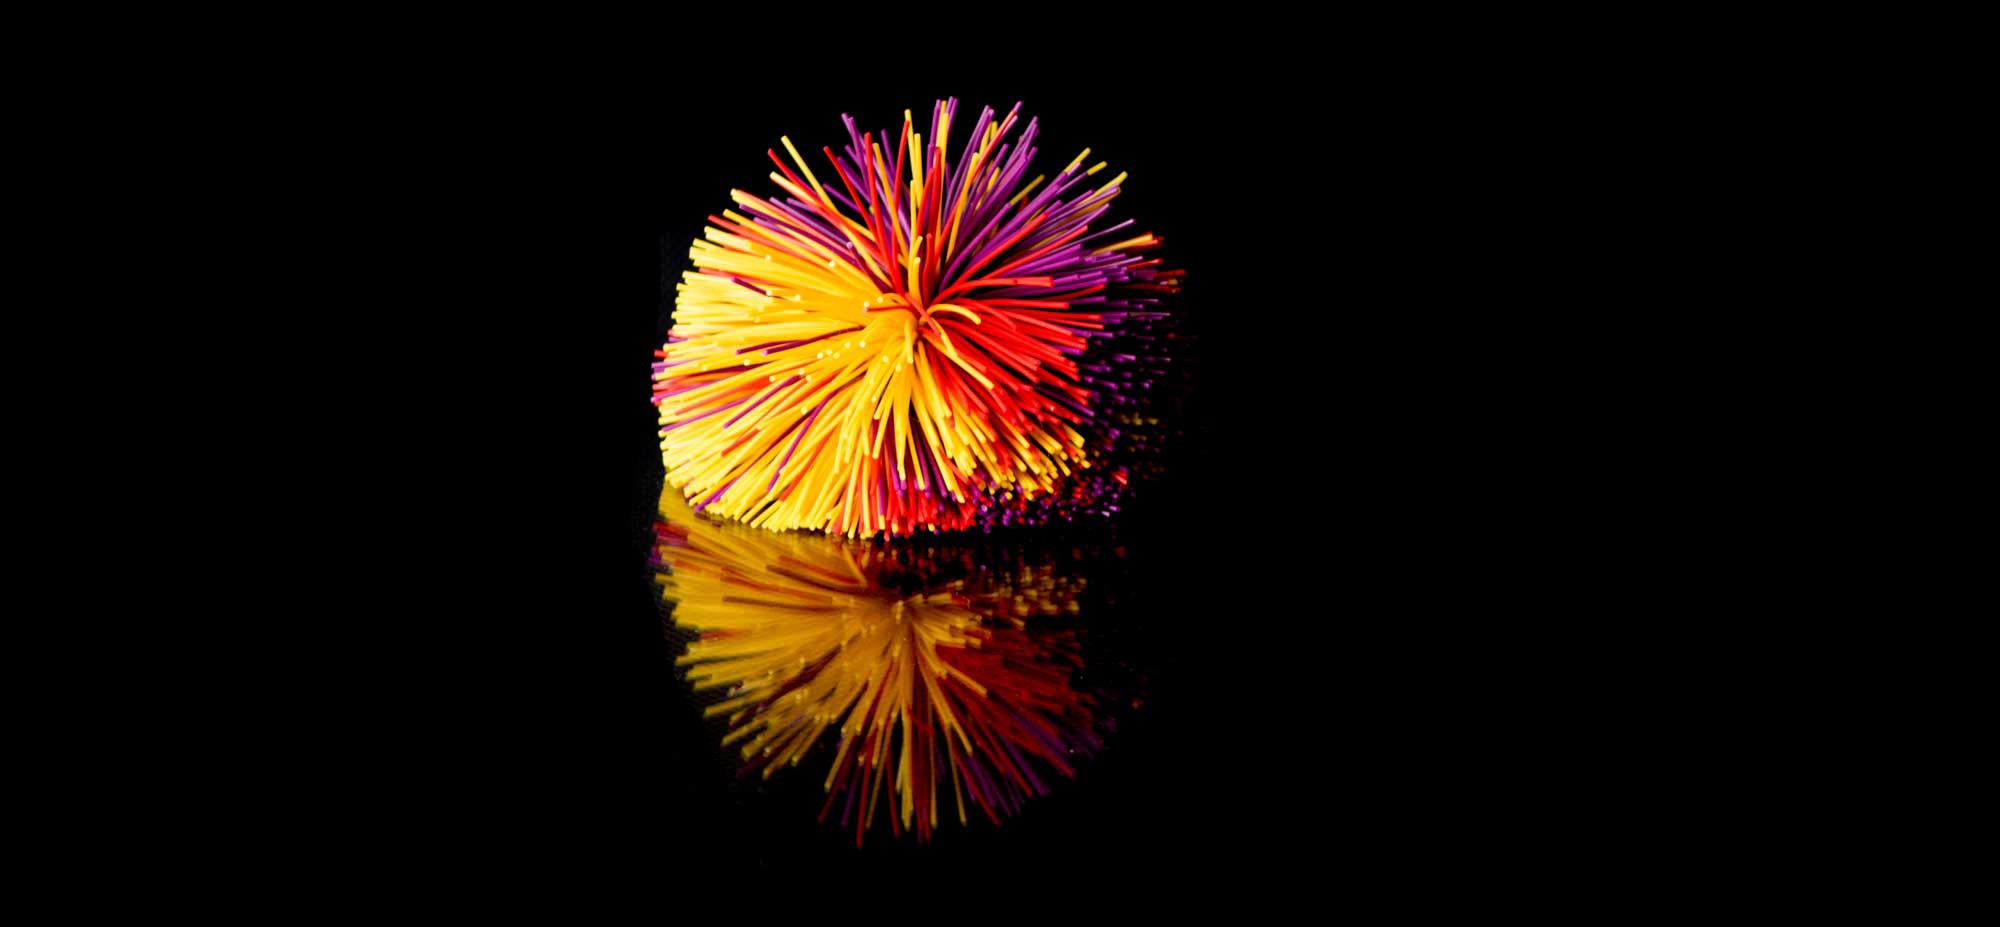 You Knew Stanford Alumni Invented Google; but the Koosh Ball?